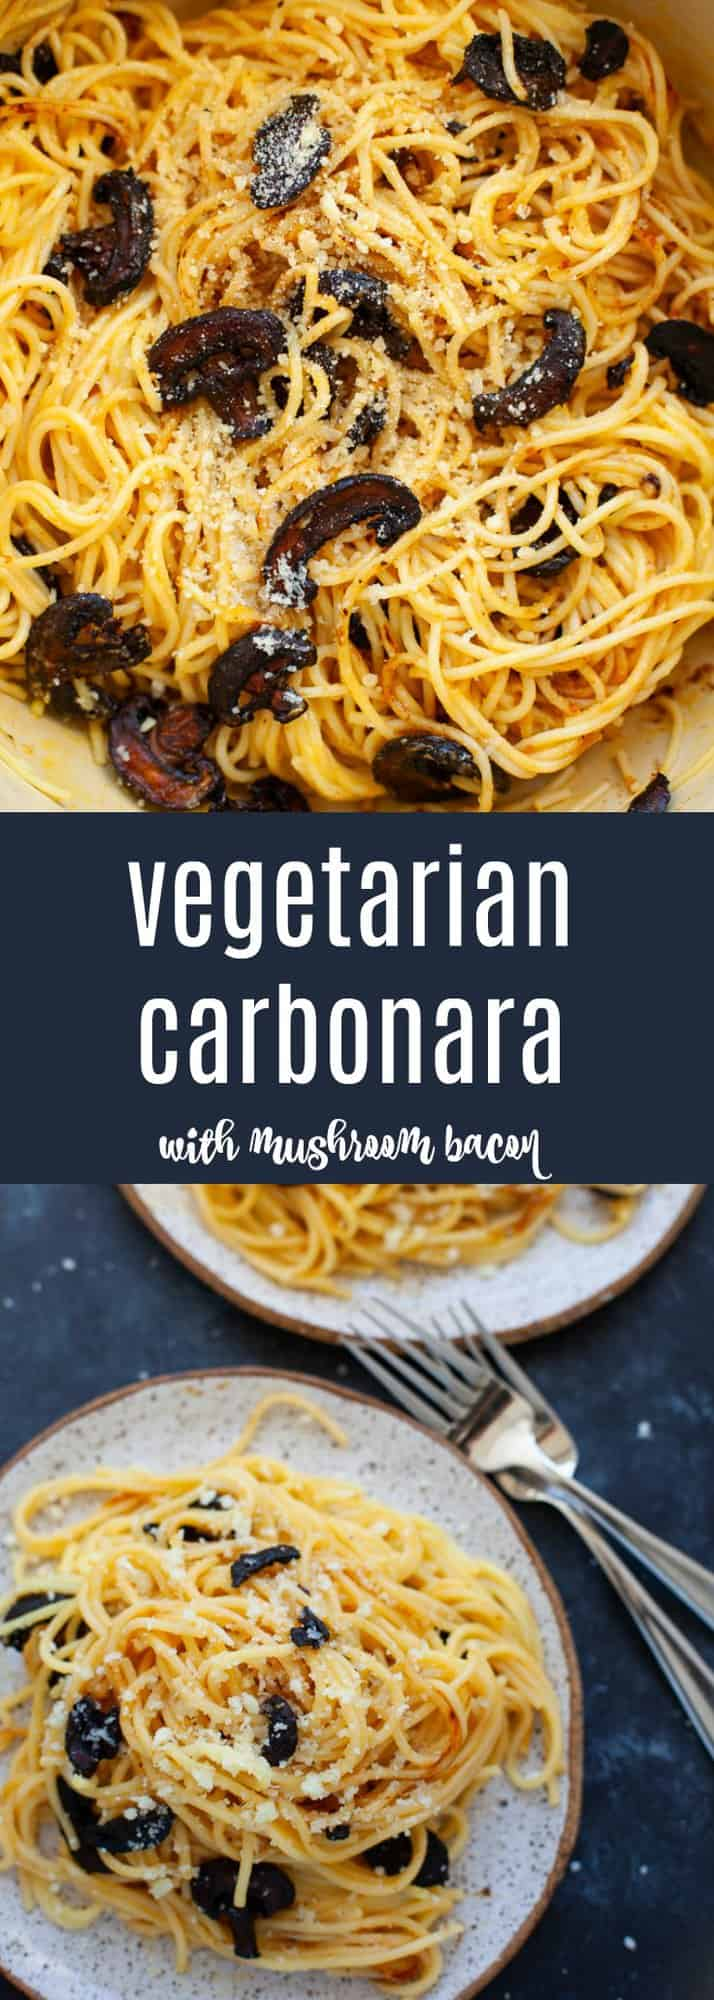 Cheesy, eggy, carby goodness, this vegetarian carbonara with mushroom bacon was inspired by my recent trip to Italy! #vegetarian #italian #pasta #carbonara